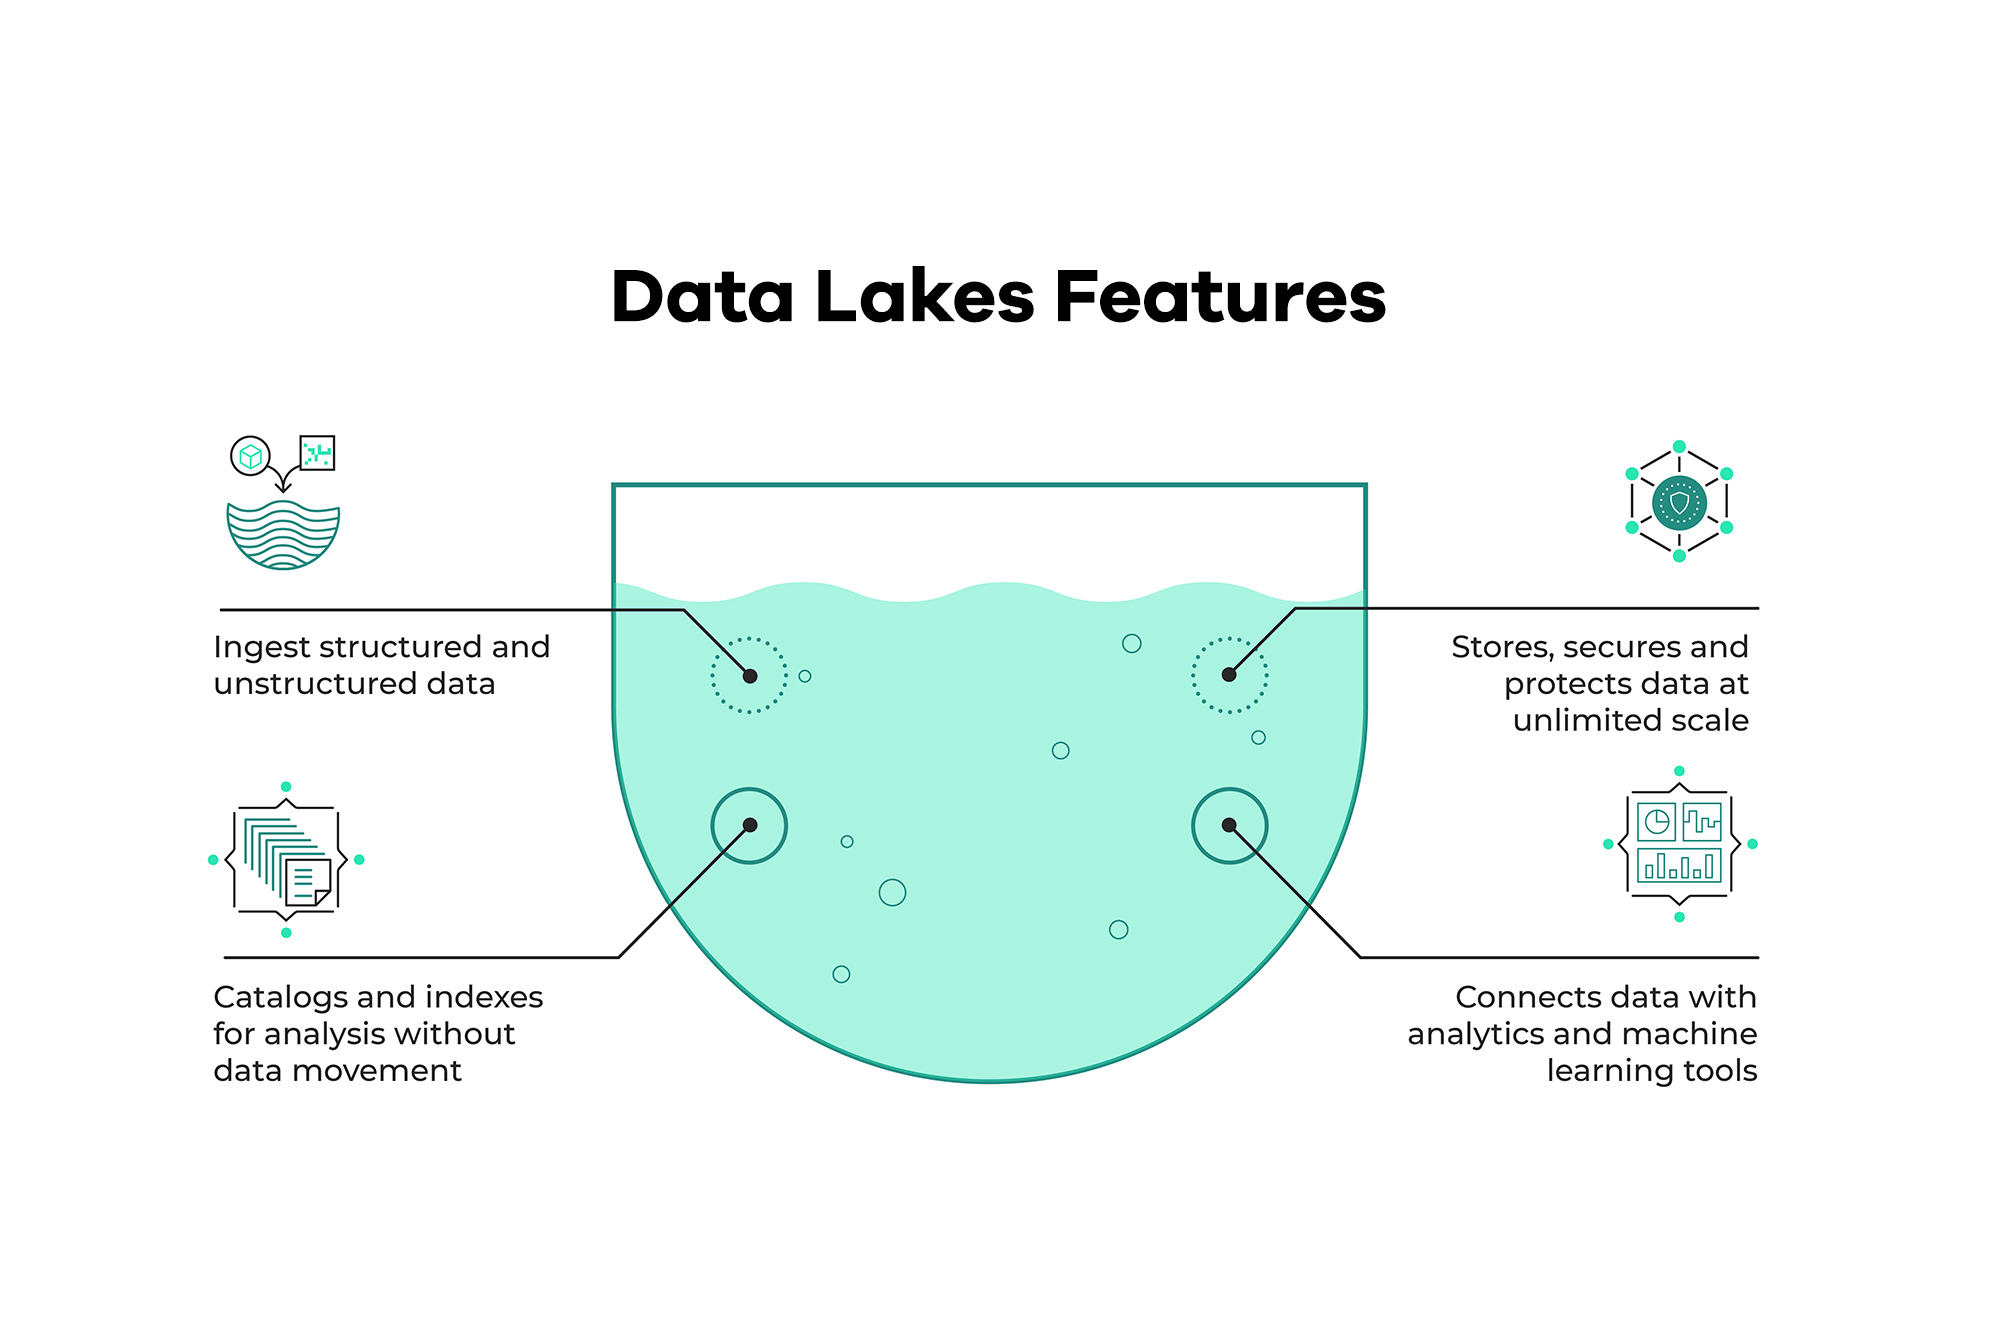 """A demonstrative image with the title """"Data Lakes Features."""" The features mentioned are: - Ingest structured and unstructured data - Stores, secures and protects data at unlimited scale - Catalogs and indexes for analysis without data movement - Connects data with analytics and machine learning tools"""